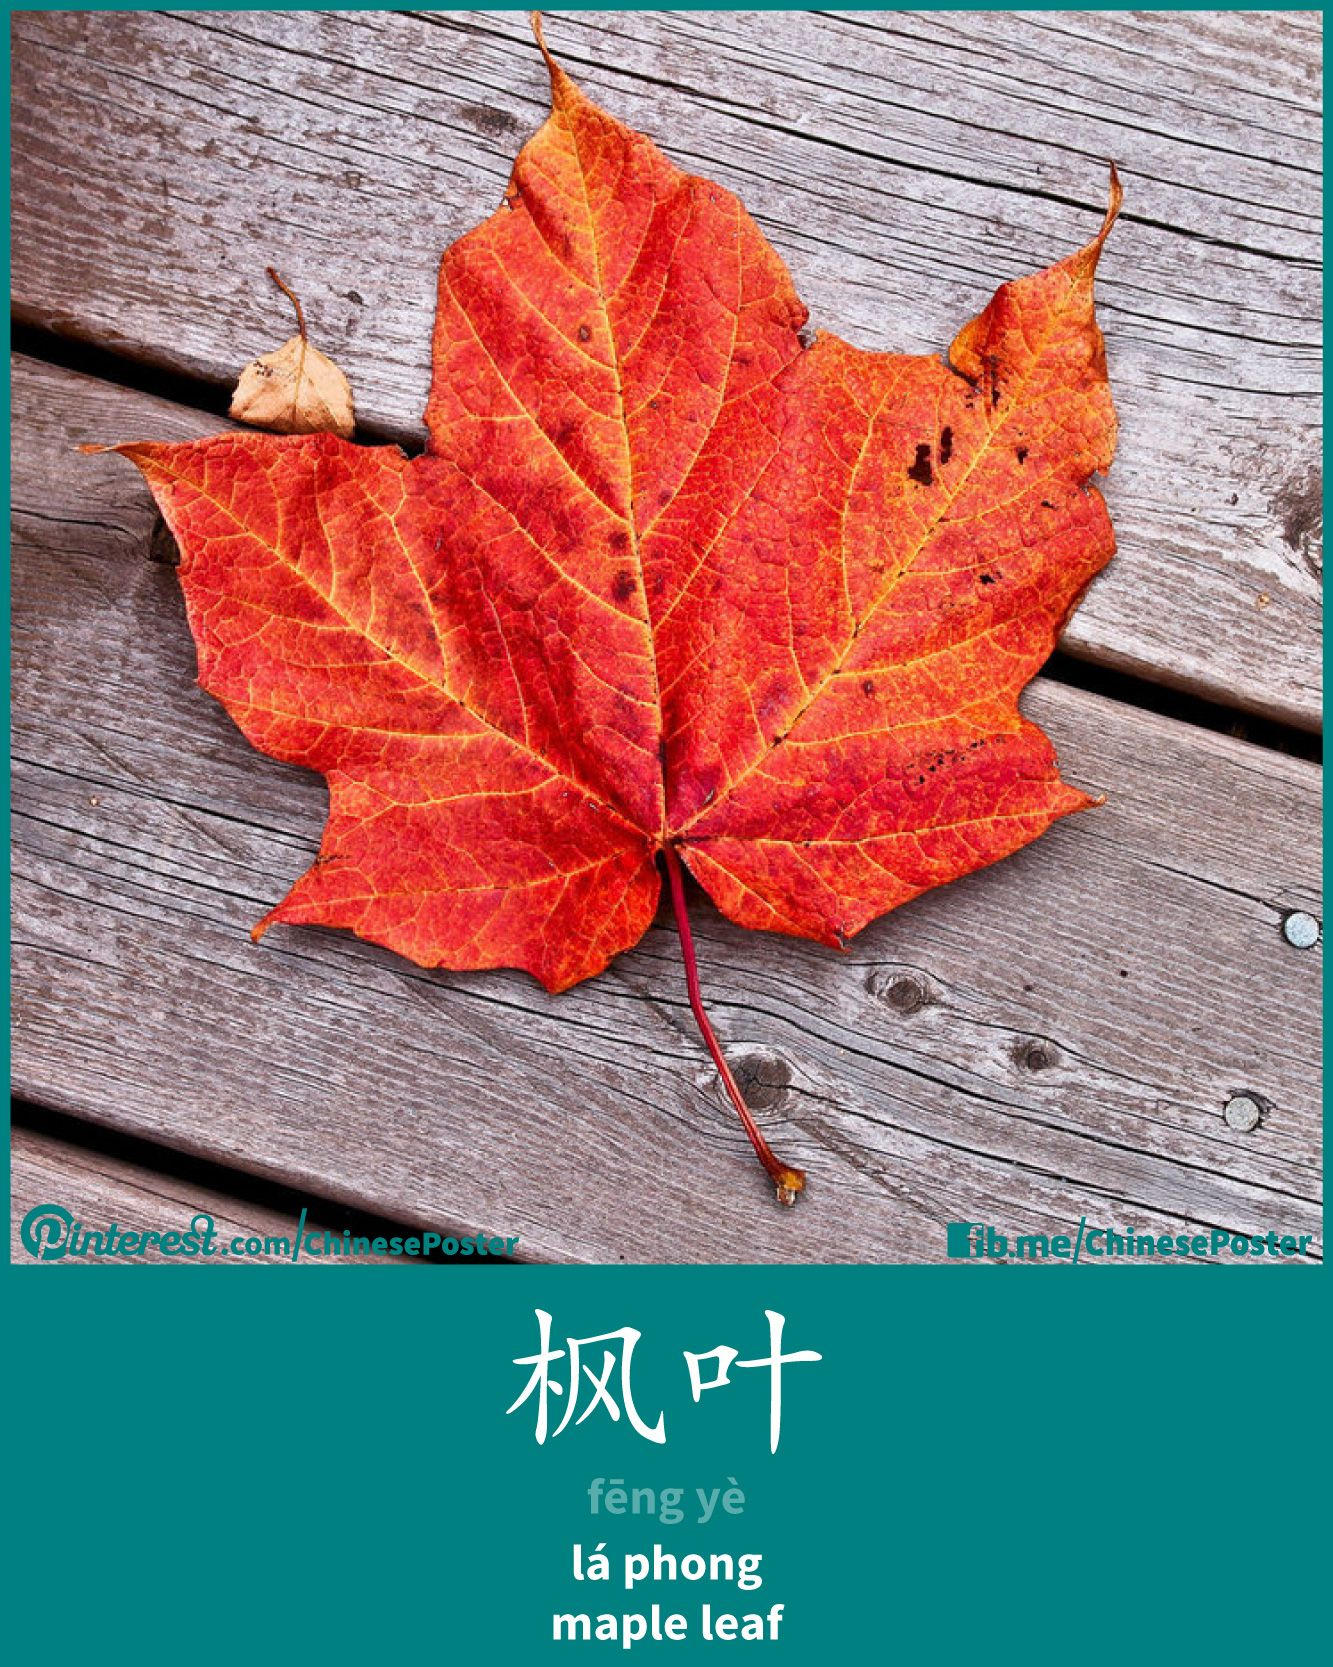 Fng Y L Phong Maple Leaf Chinese Words Plants